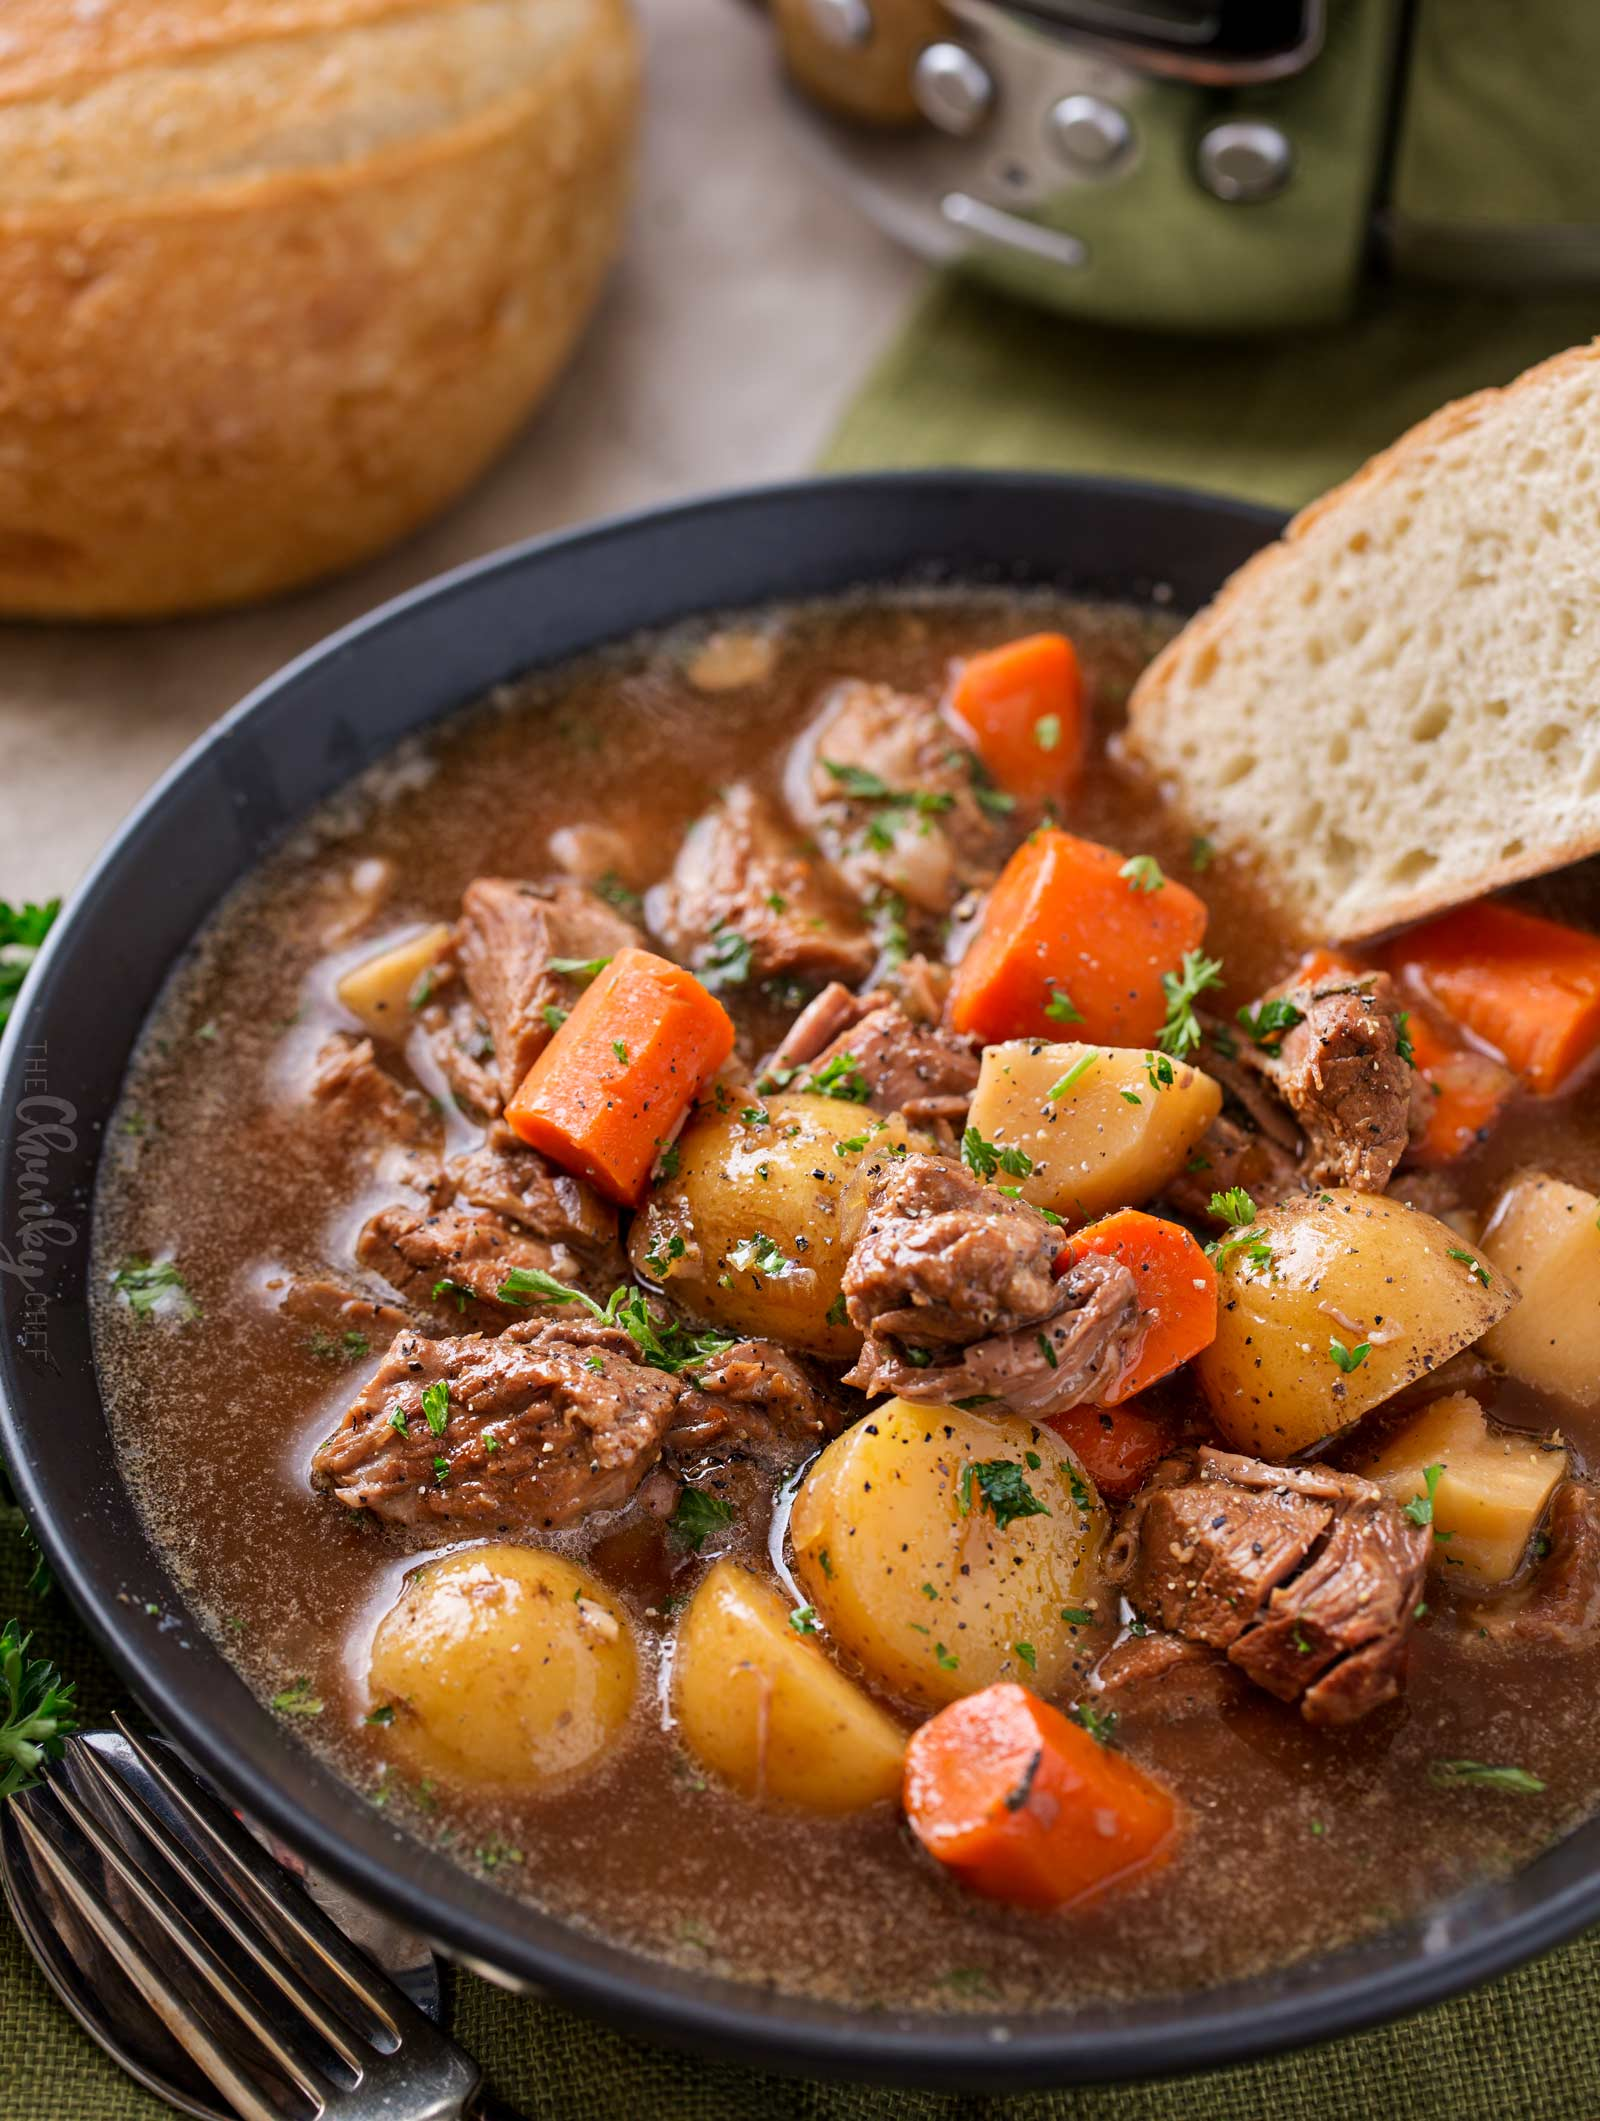 Slow cooker beef stew in bowl.